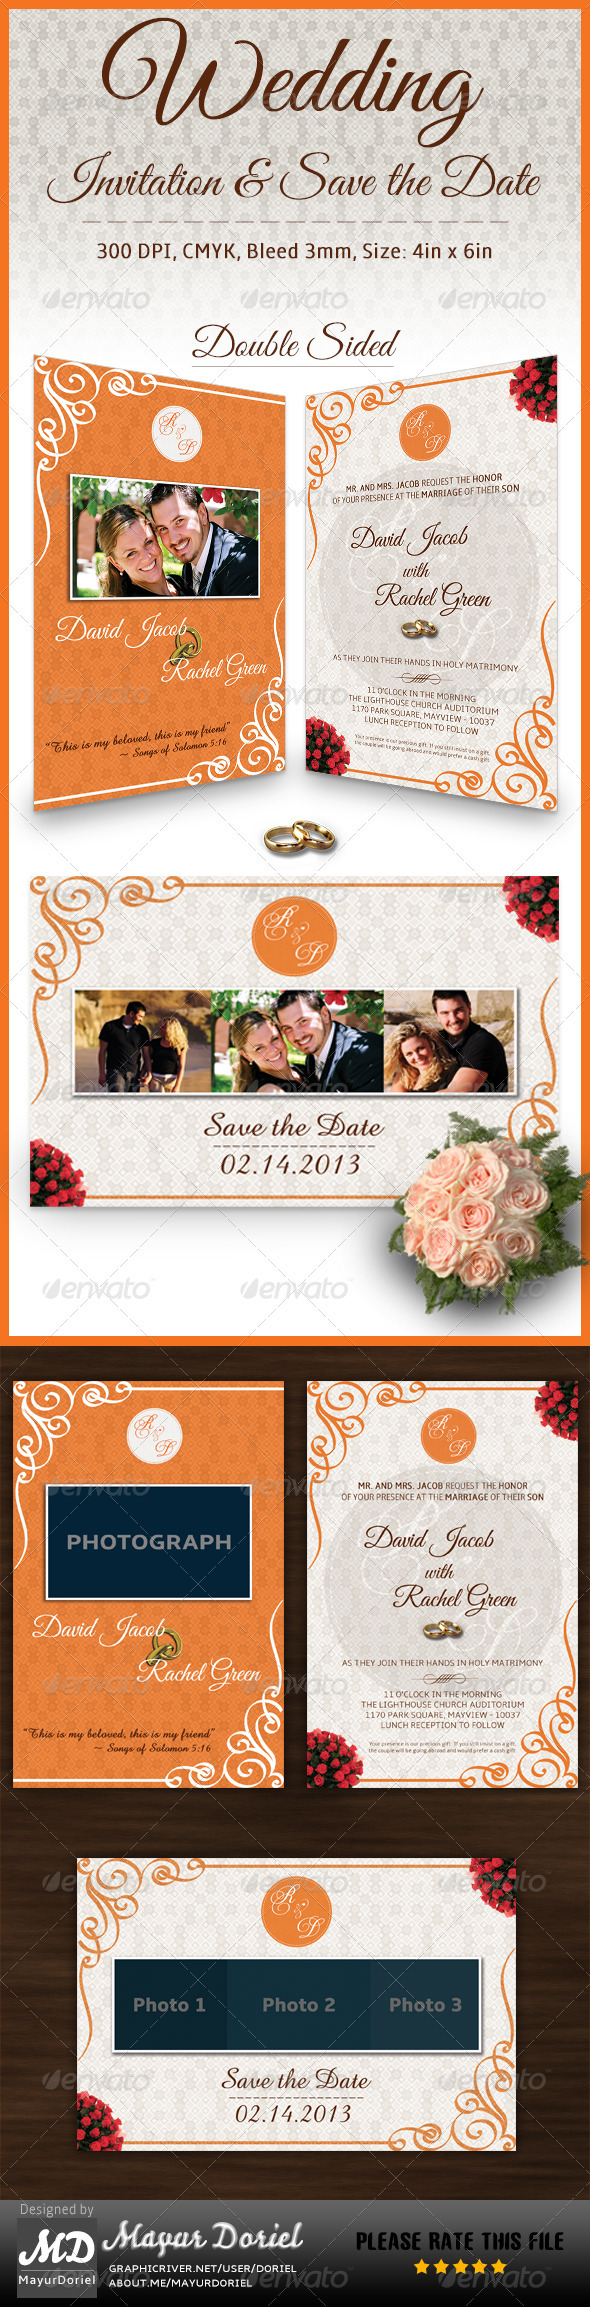 Wedding Invitation Card & Save the Date - Invitations Cards & Invites